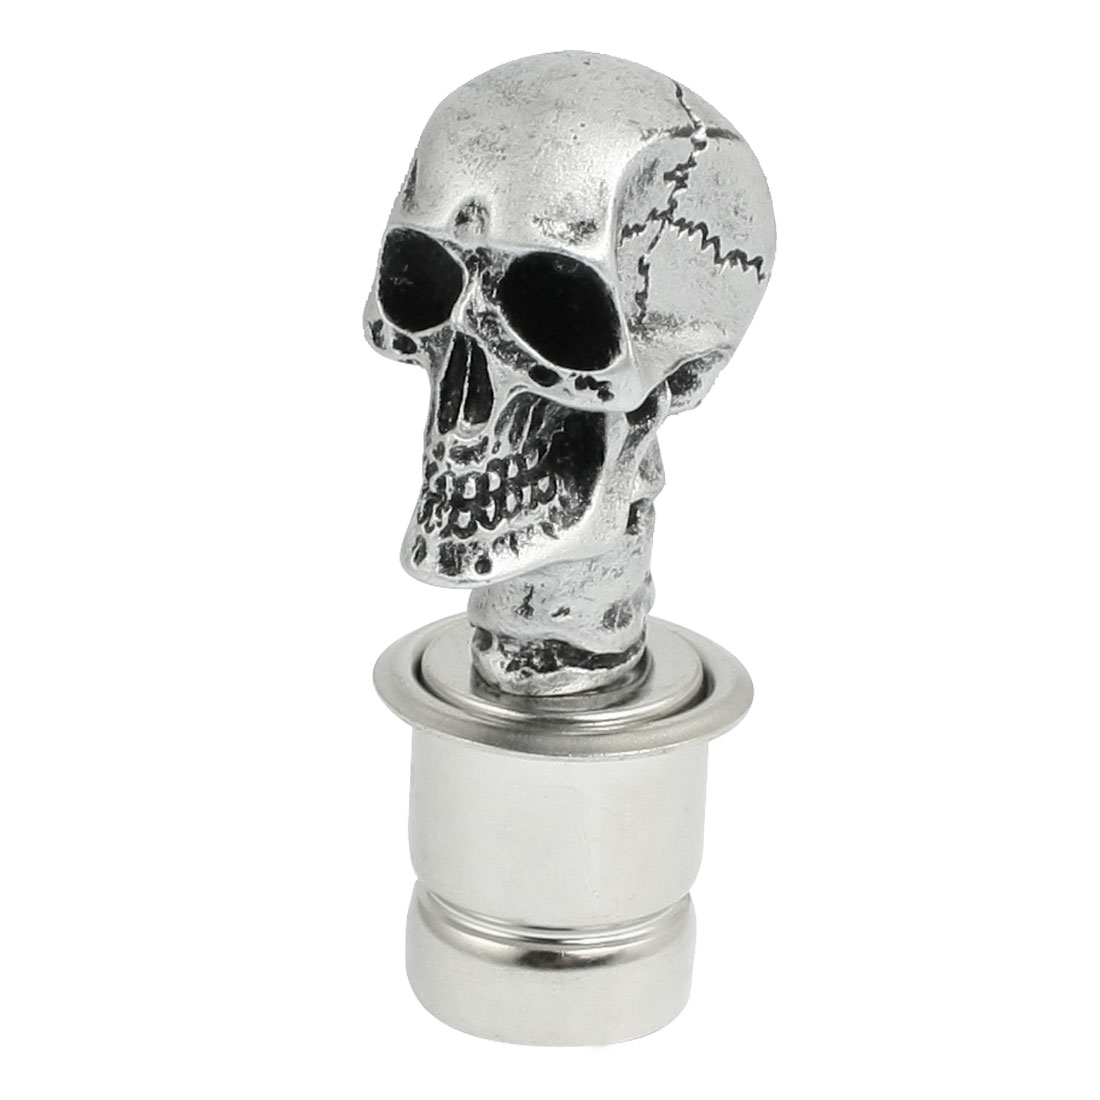 Silver Tone Wicked Craved Skull Universal Fit Car Cigarette Lighter Plug Socket